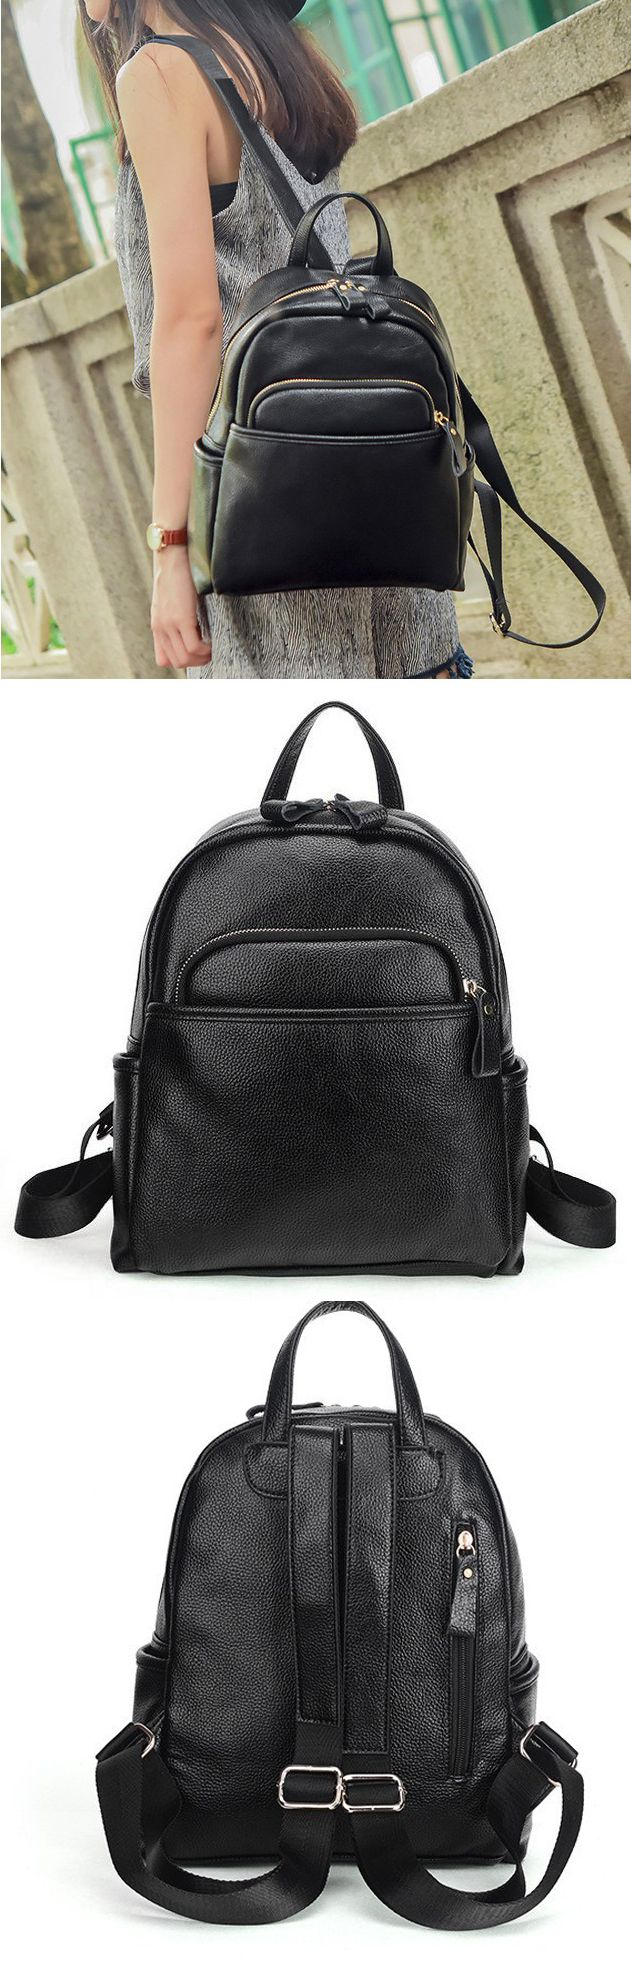 New Arrival Cute Motorcycle Style Solid Zipper Black School Bag PU Travel Backpack backpack luggage,backpack luggage strap,backpack luggage travel,backpack college,backpack college laptops,backpack college girl,backpack college girl style,backpack college laptops,backpack black,backpack black small,backpack black white,backpack black school,backpack men travel,backpack men,backpack men travel canvases,backpack men college,backpack men fashion,backpack men fashion style